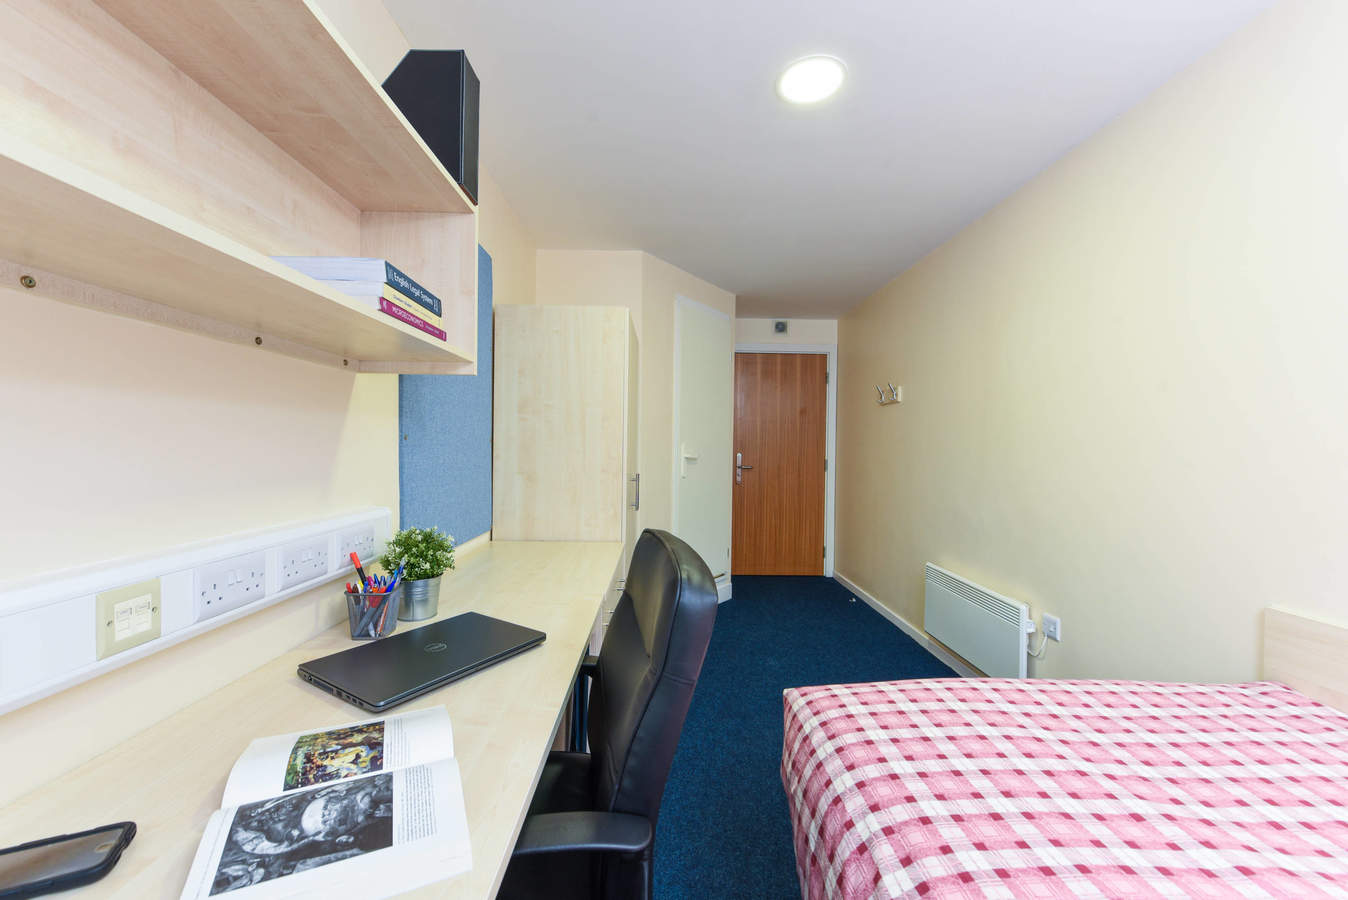 Nottingham_-_trinity_square_ensuite_9b-3_converted